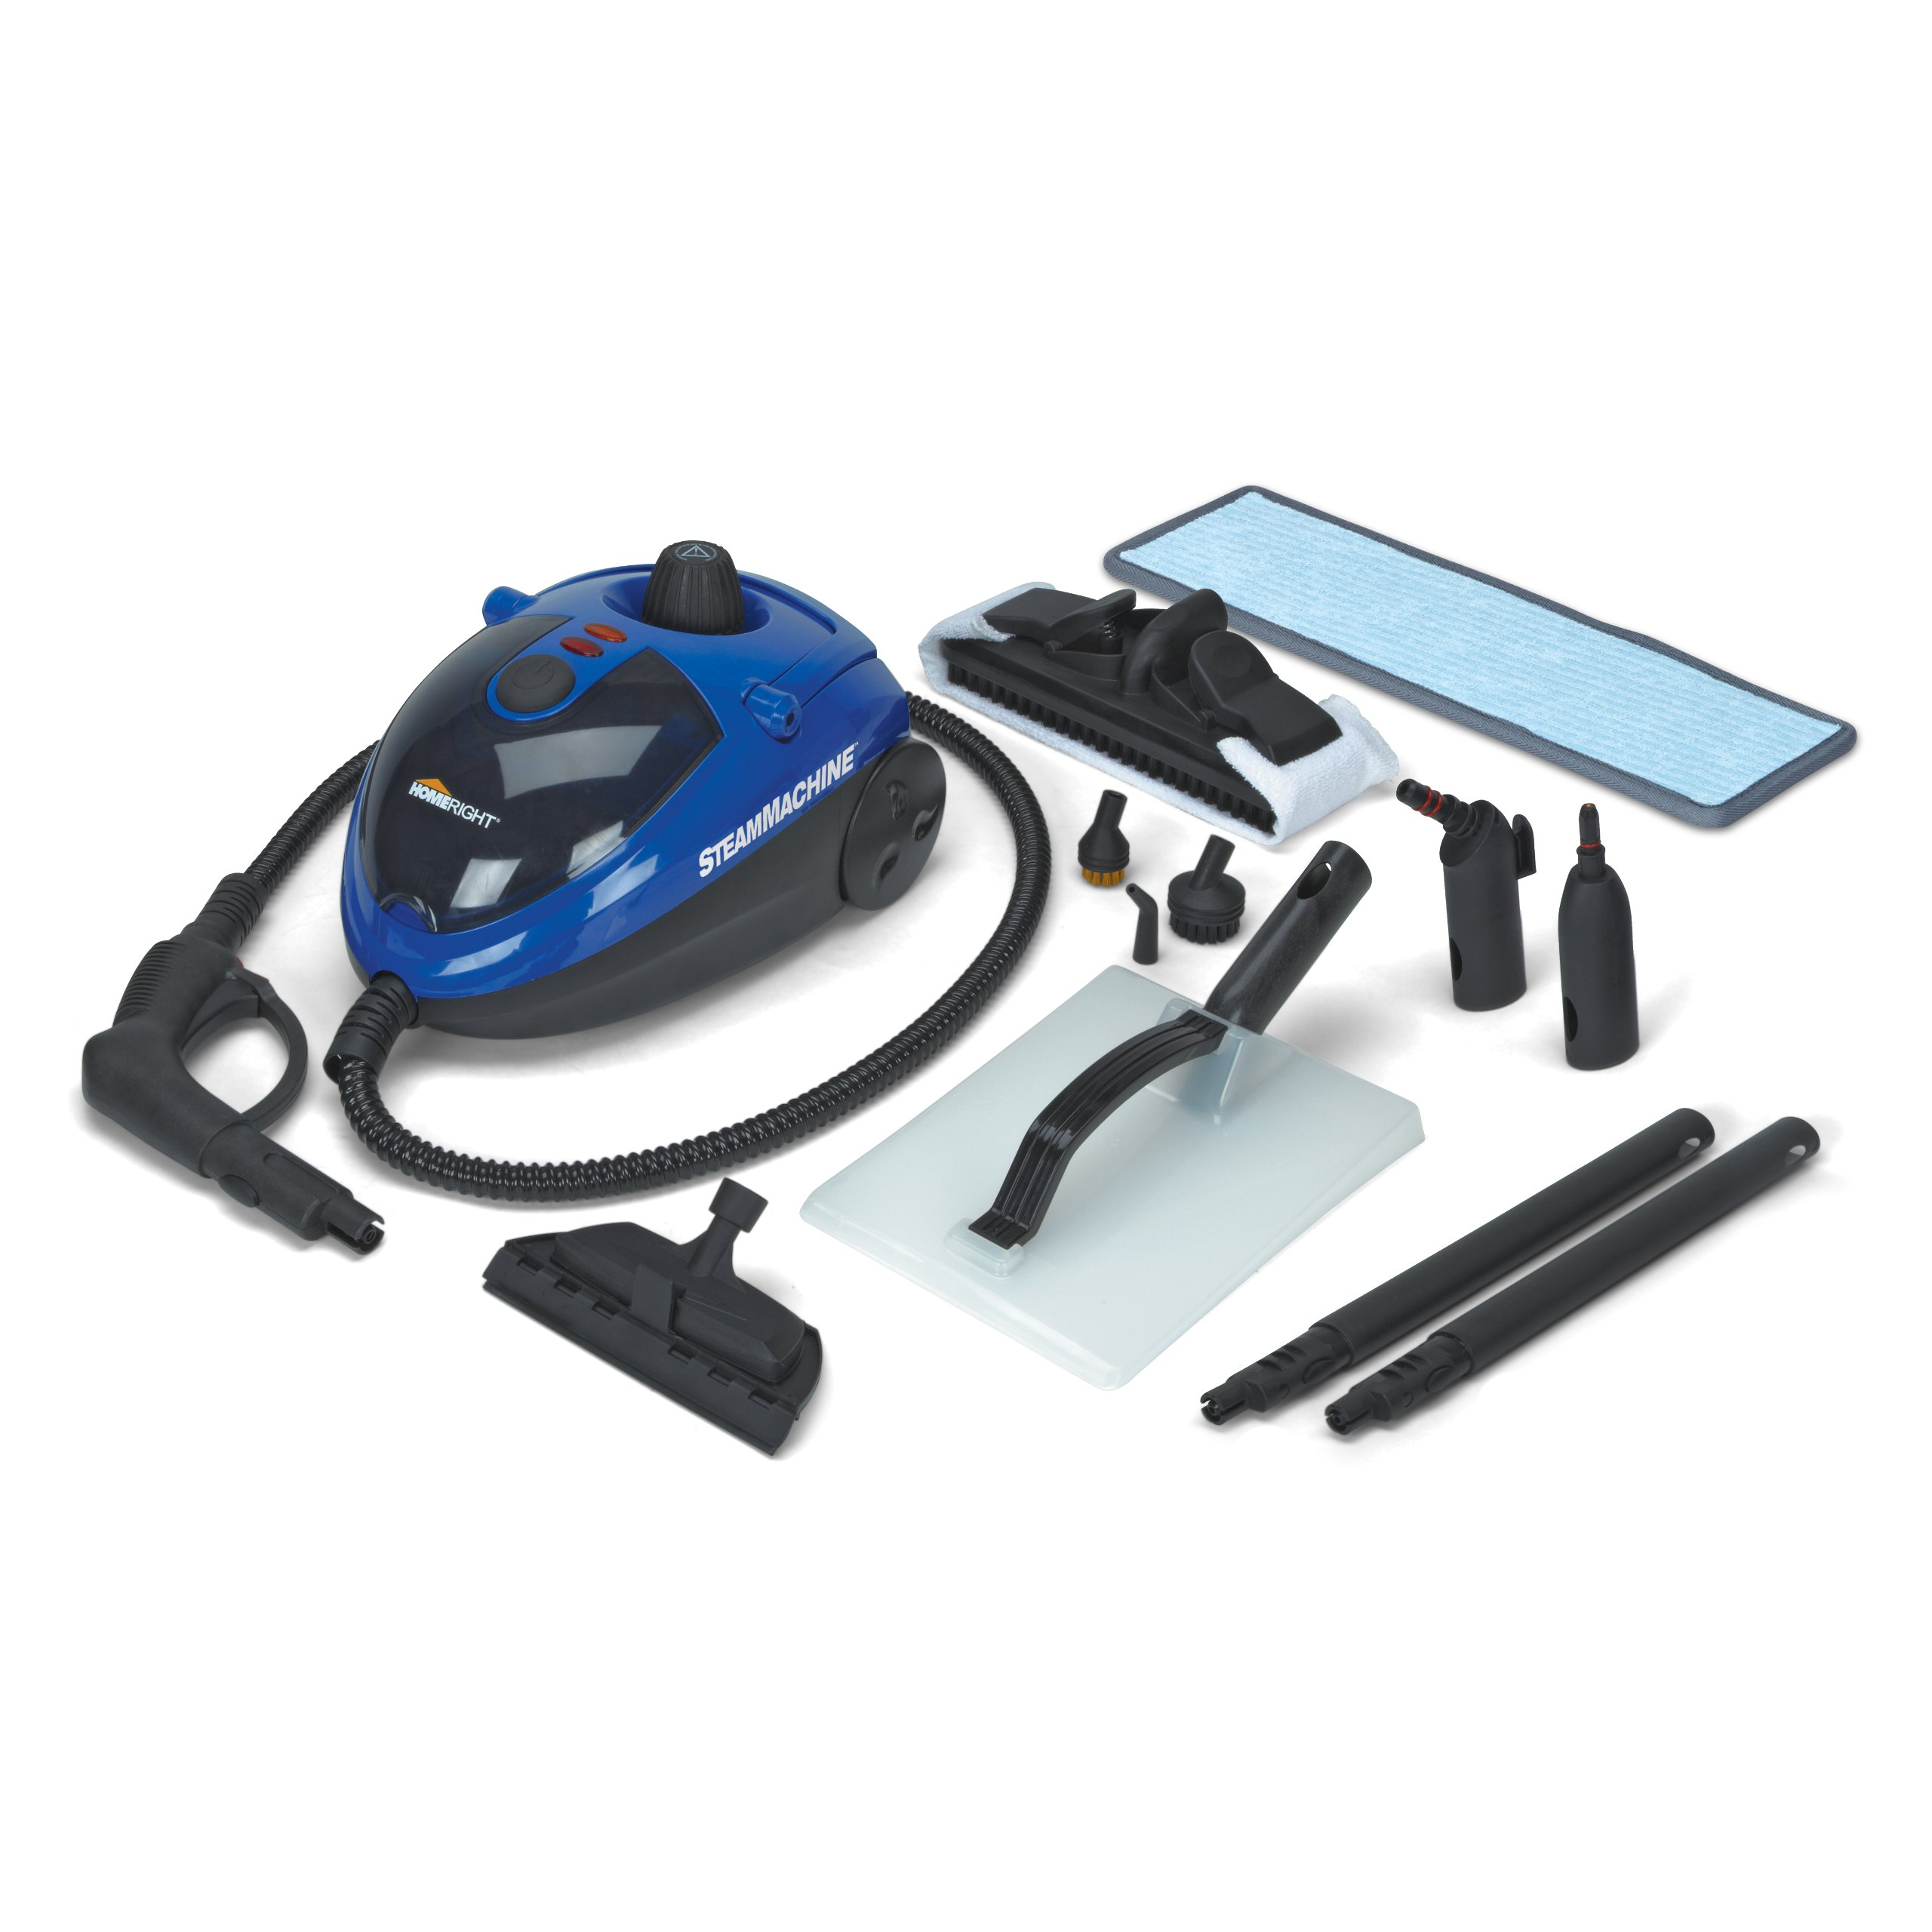 HomeRight C800880 Steam Machine Steamer for Steam Cleaning and Wallpaper Removal product image